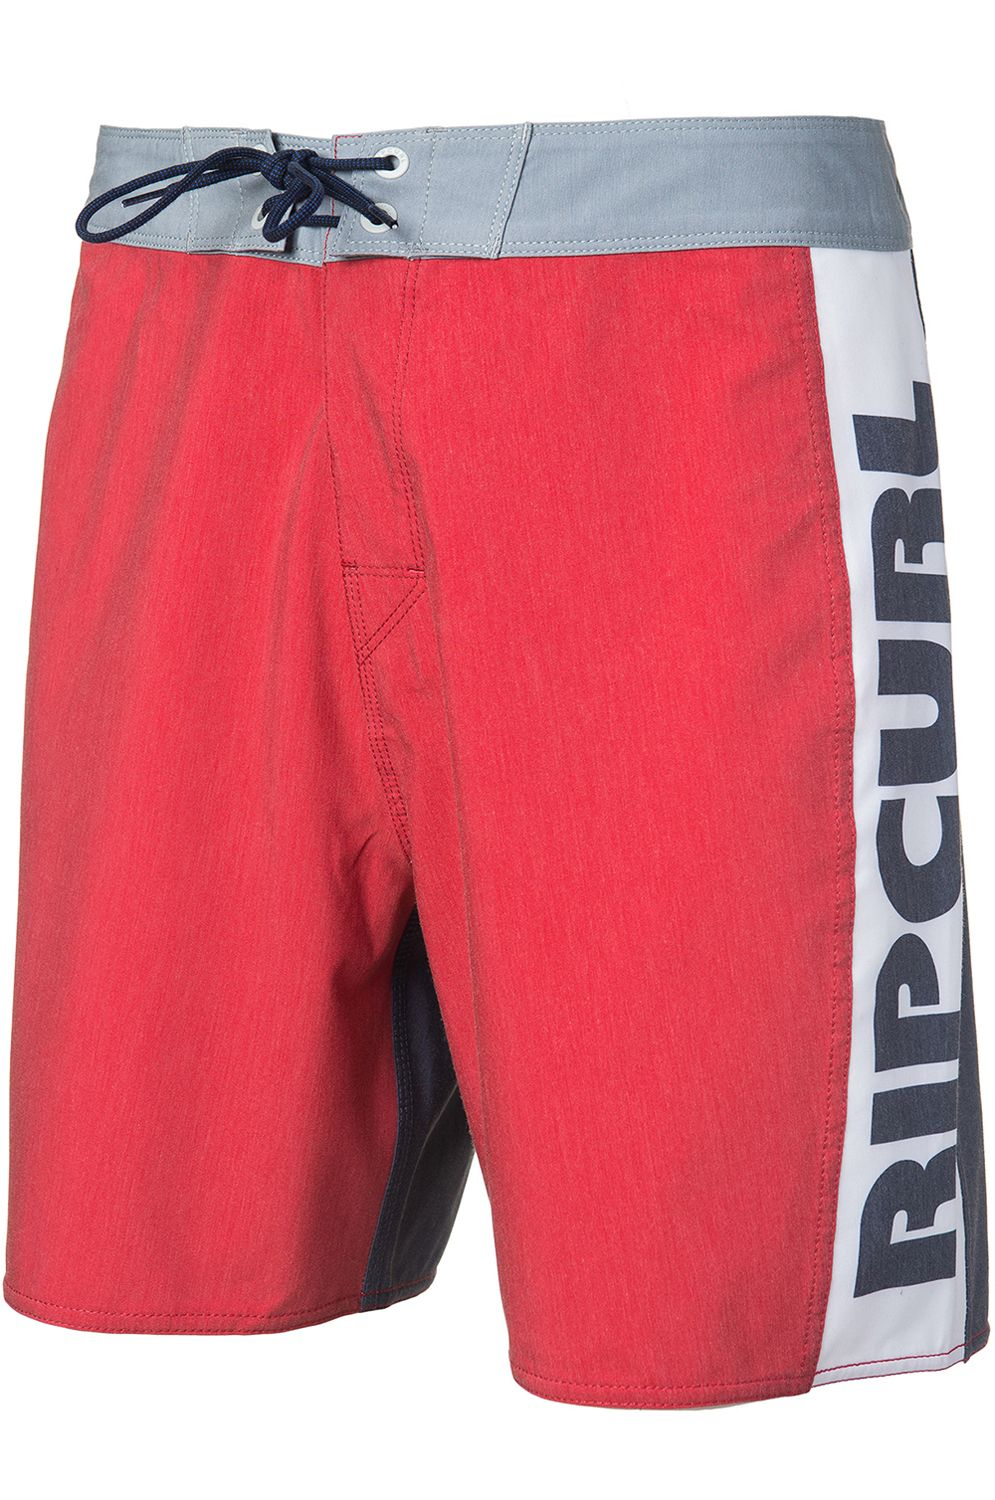 Boardshorts Rip Curl MIRAGE OWEN SWITCH 18in Rouge/Red